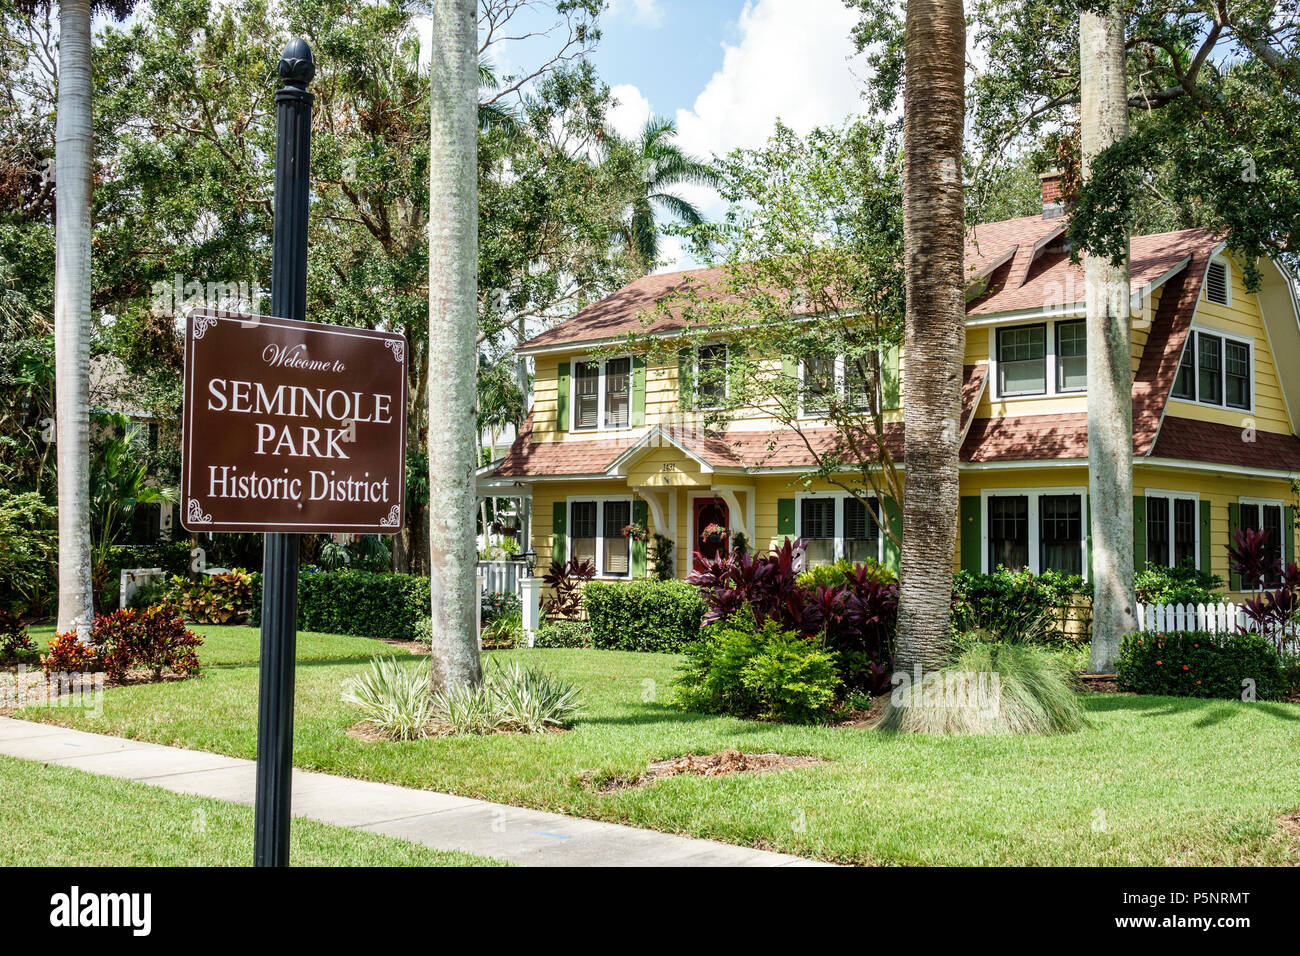 Fort Ft. Myers Florida Seminole Park Historic District neighborhood house home residence exterior front yard sign - Stock Image